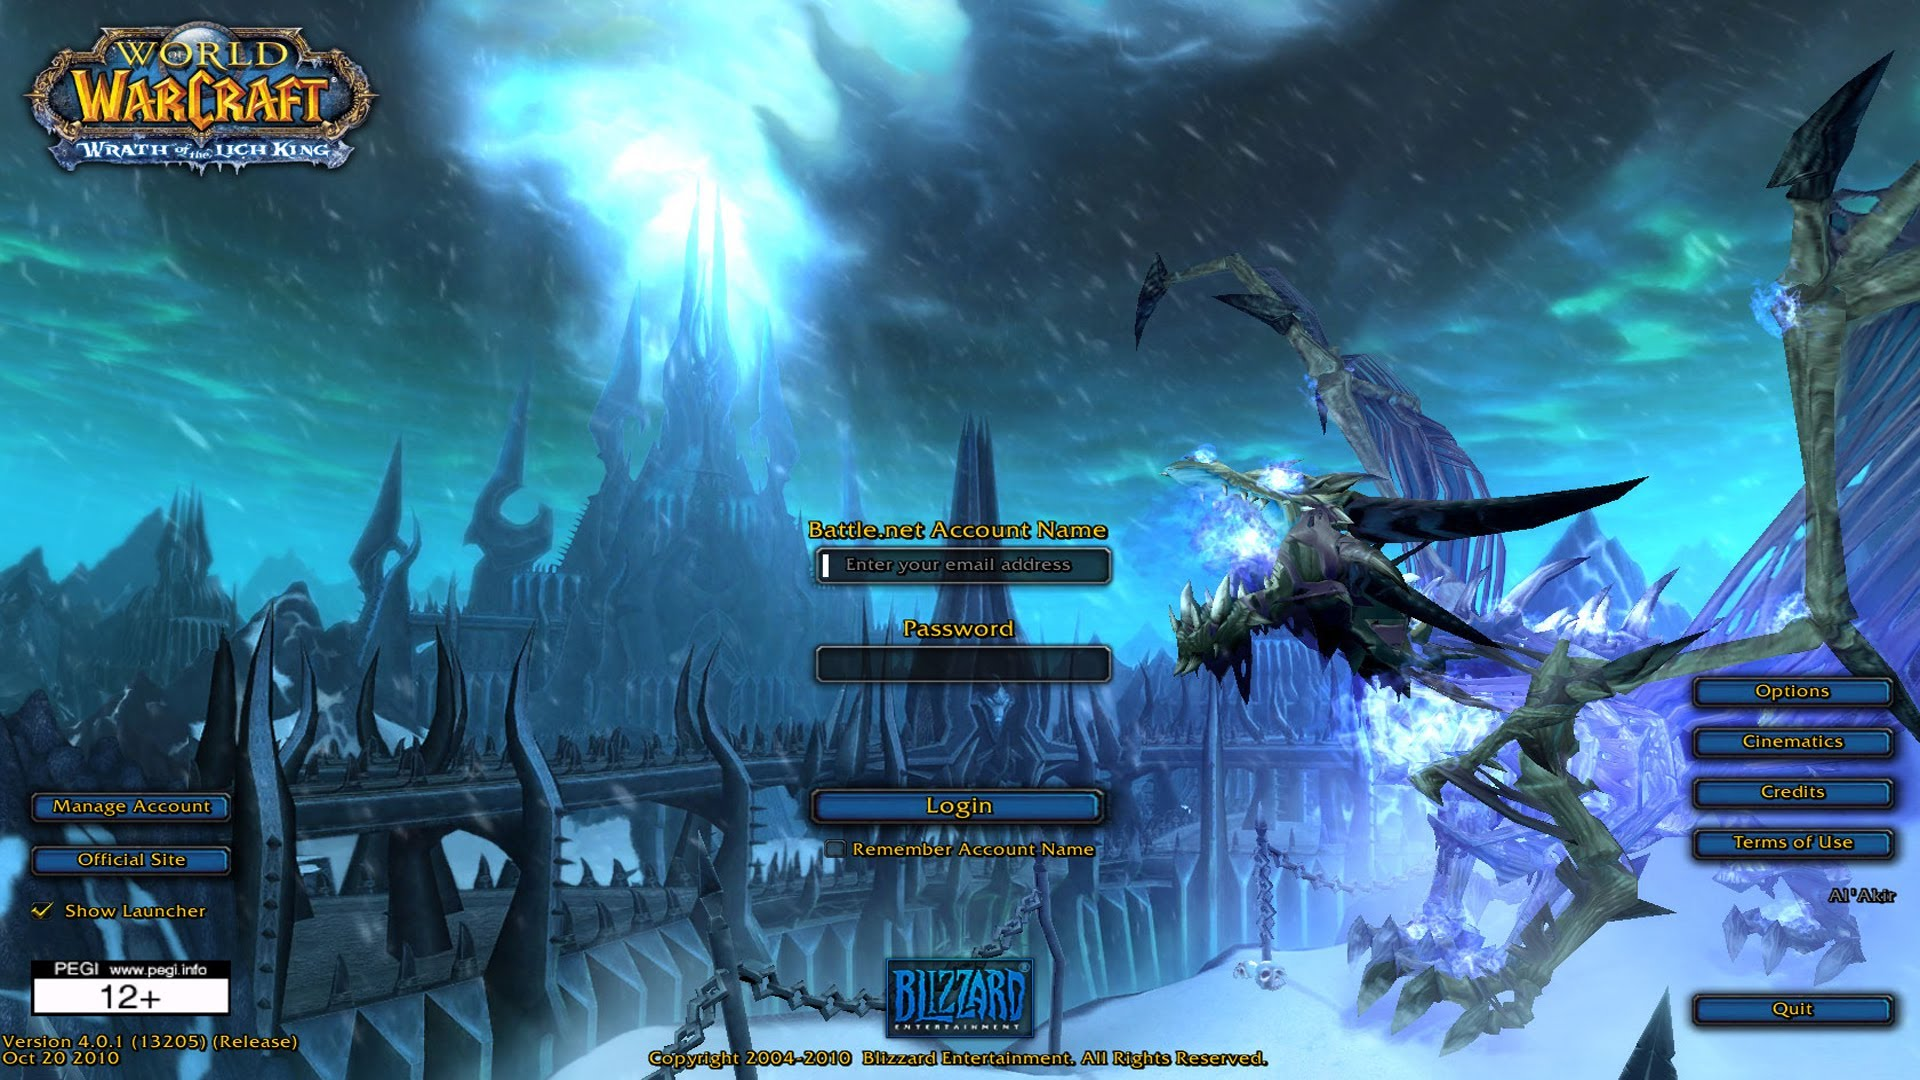 wotlk 335a client login screen